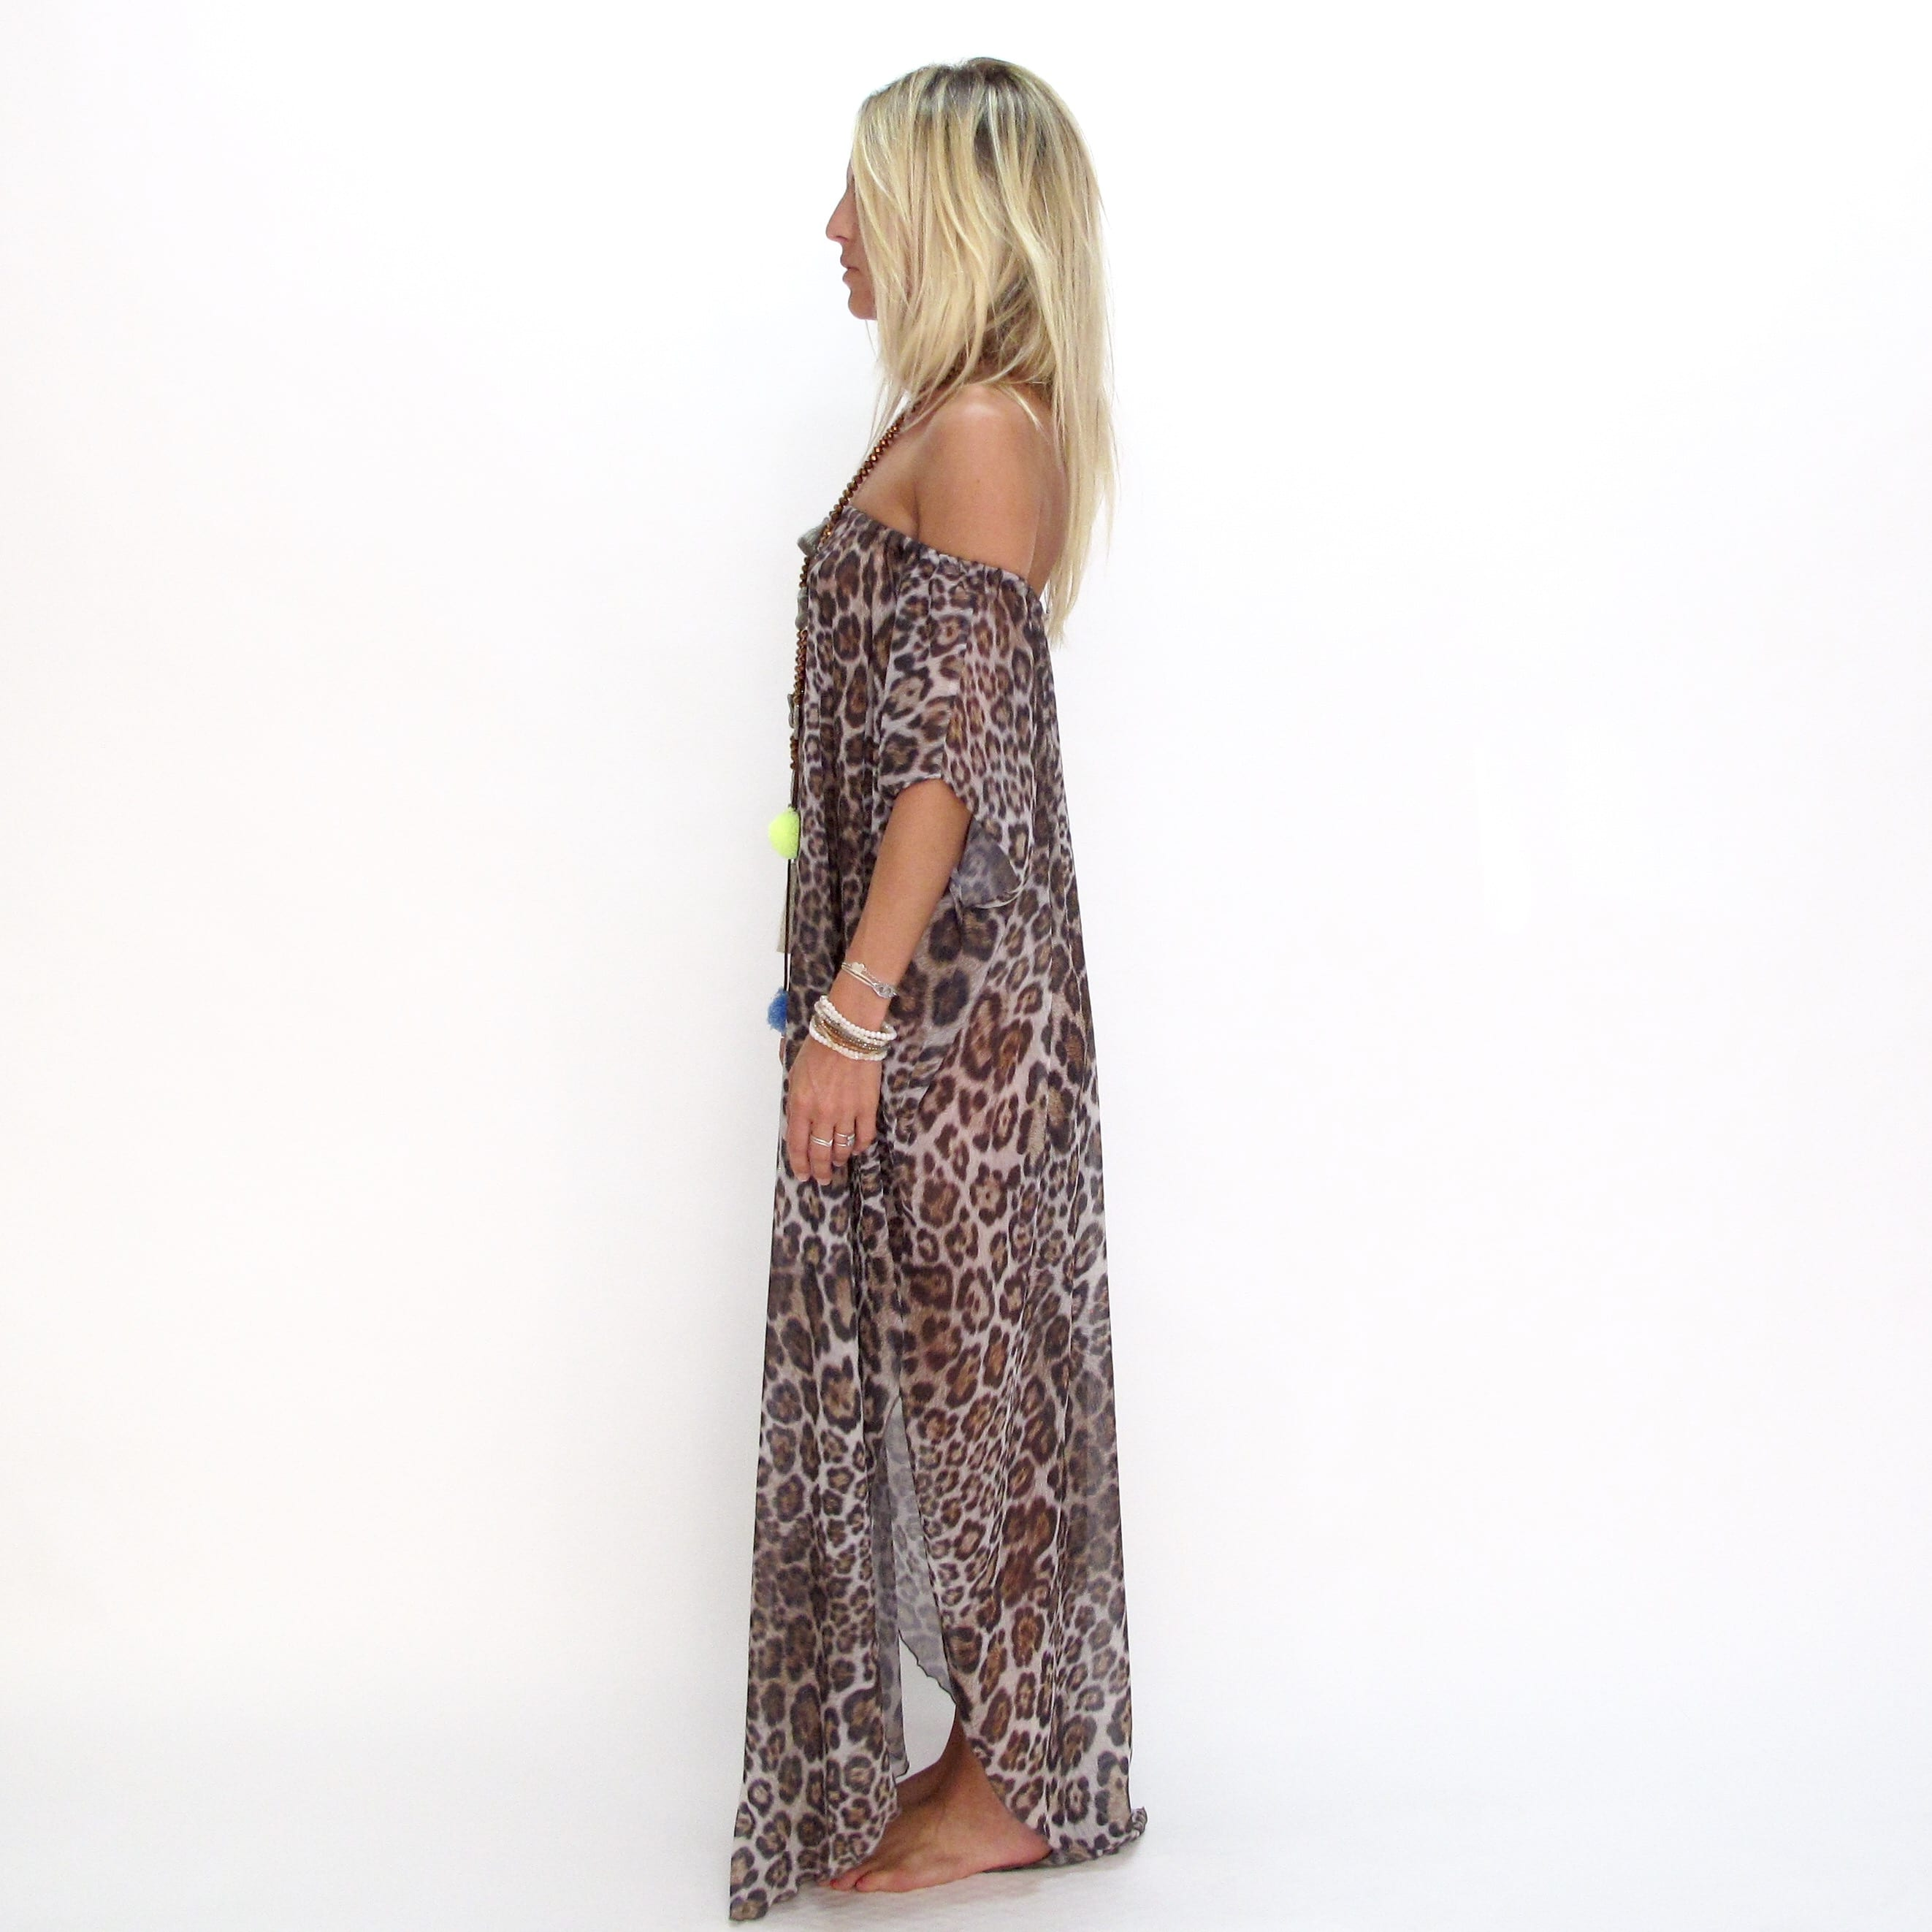 Dress Hollywood print les neobourgeoises resortwear dress boheme robe boheme tunique boheme fashion brand beachwear vetement boheme clothe beachwear clothe resortwear boutique accessoirs boheme